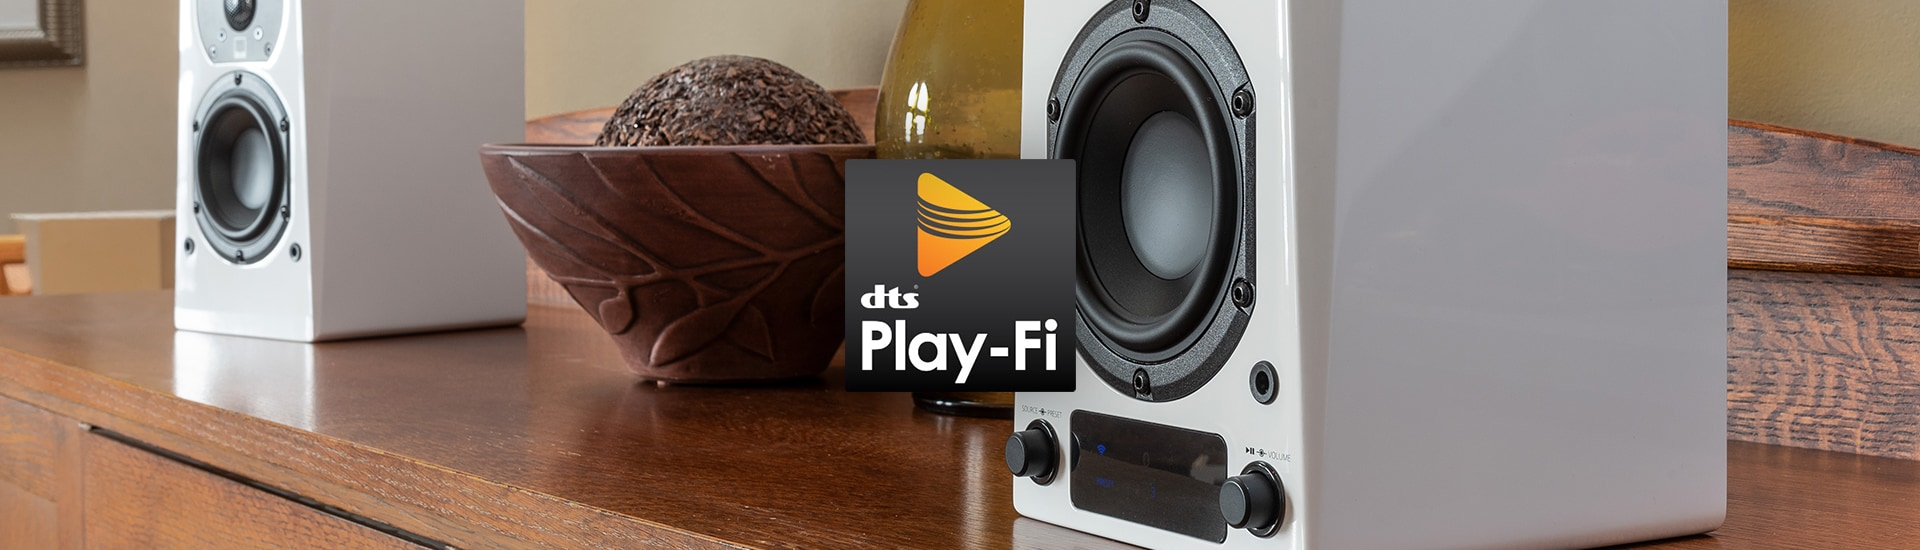 20191212 web dts play fi landing blog post